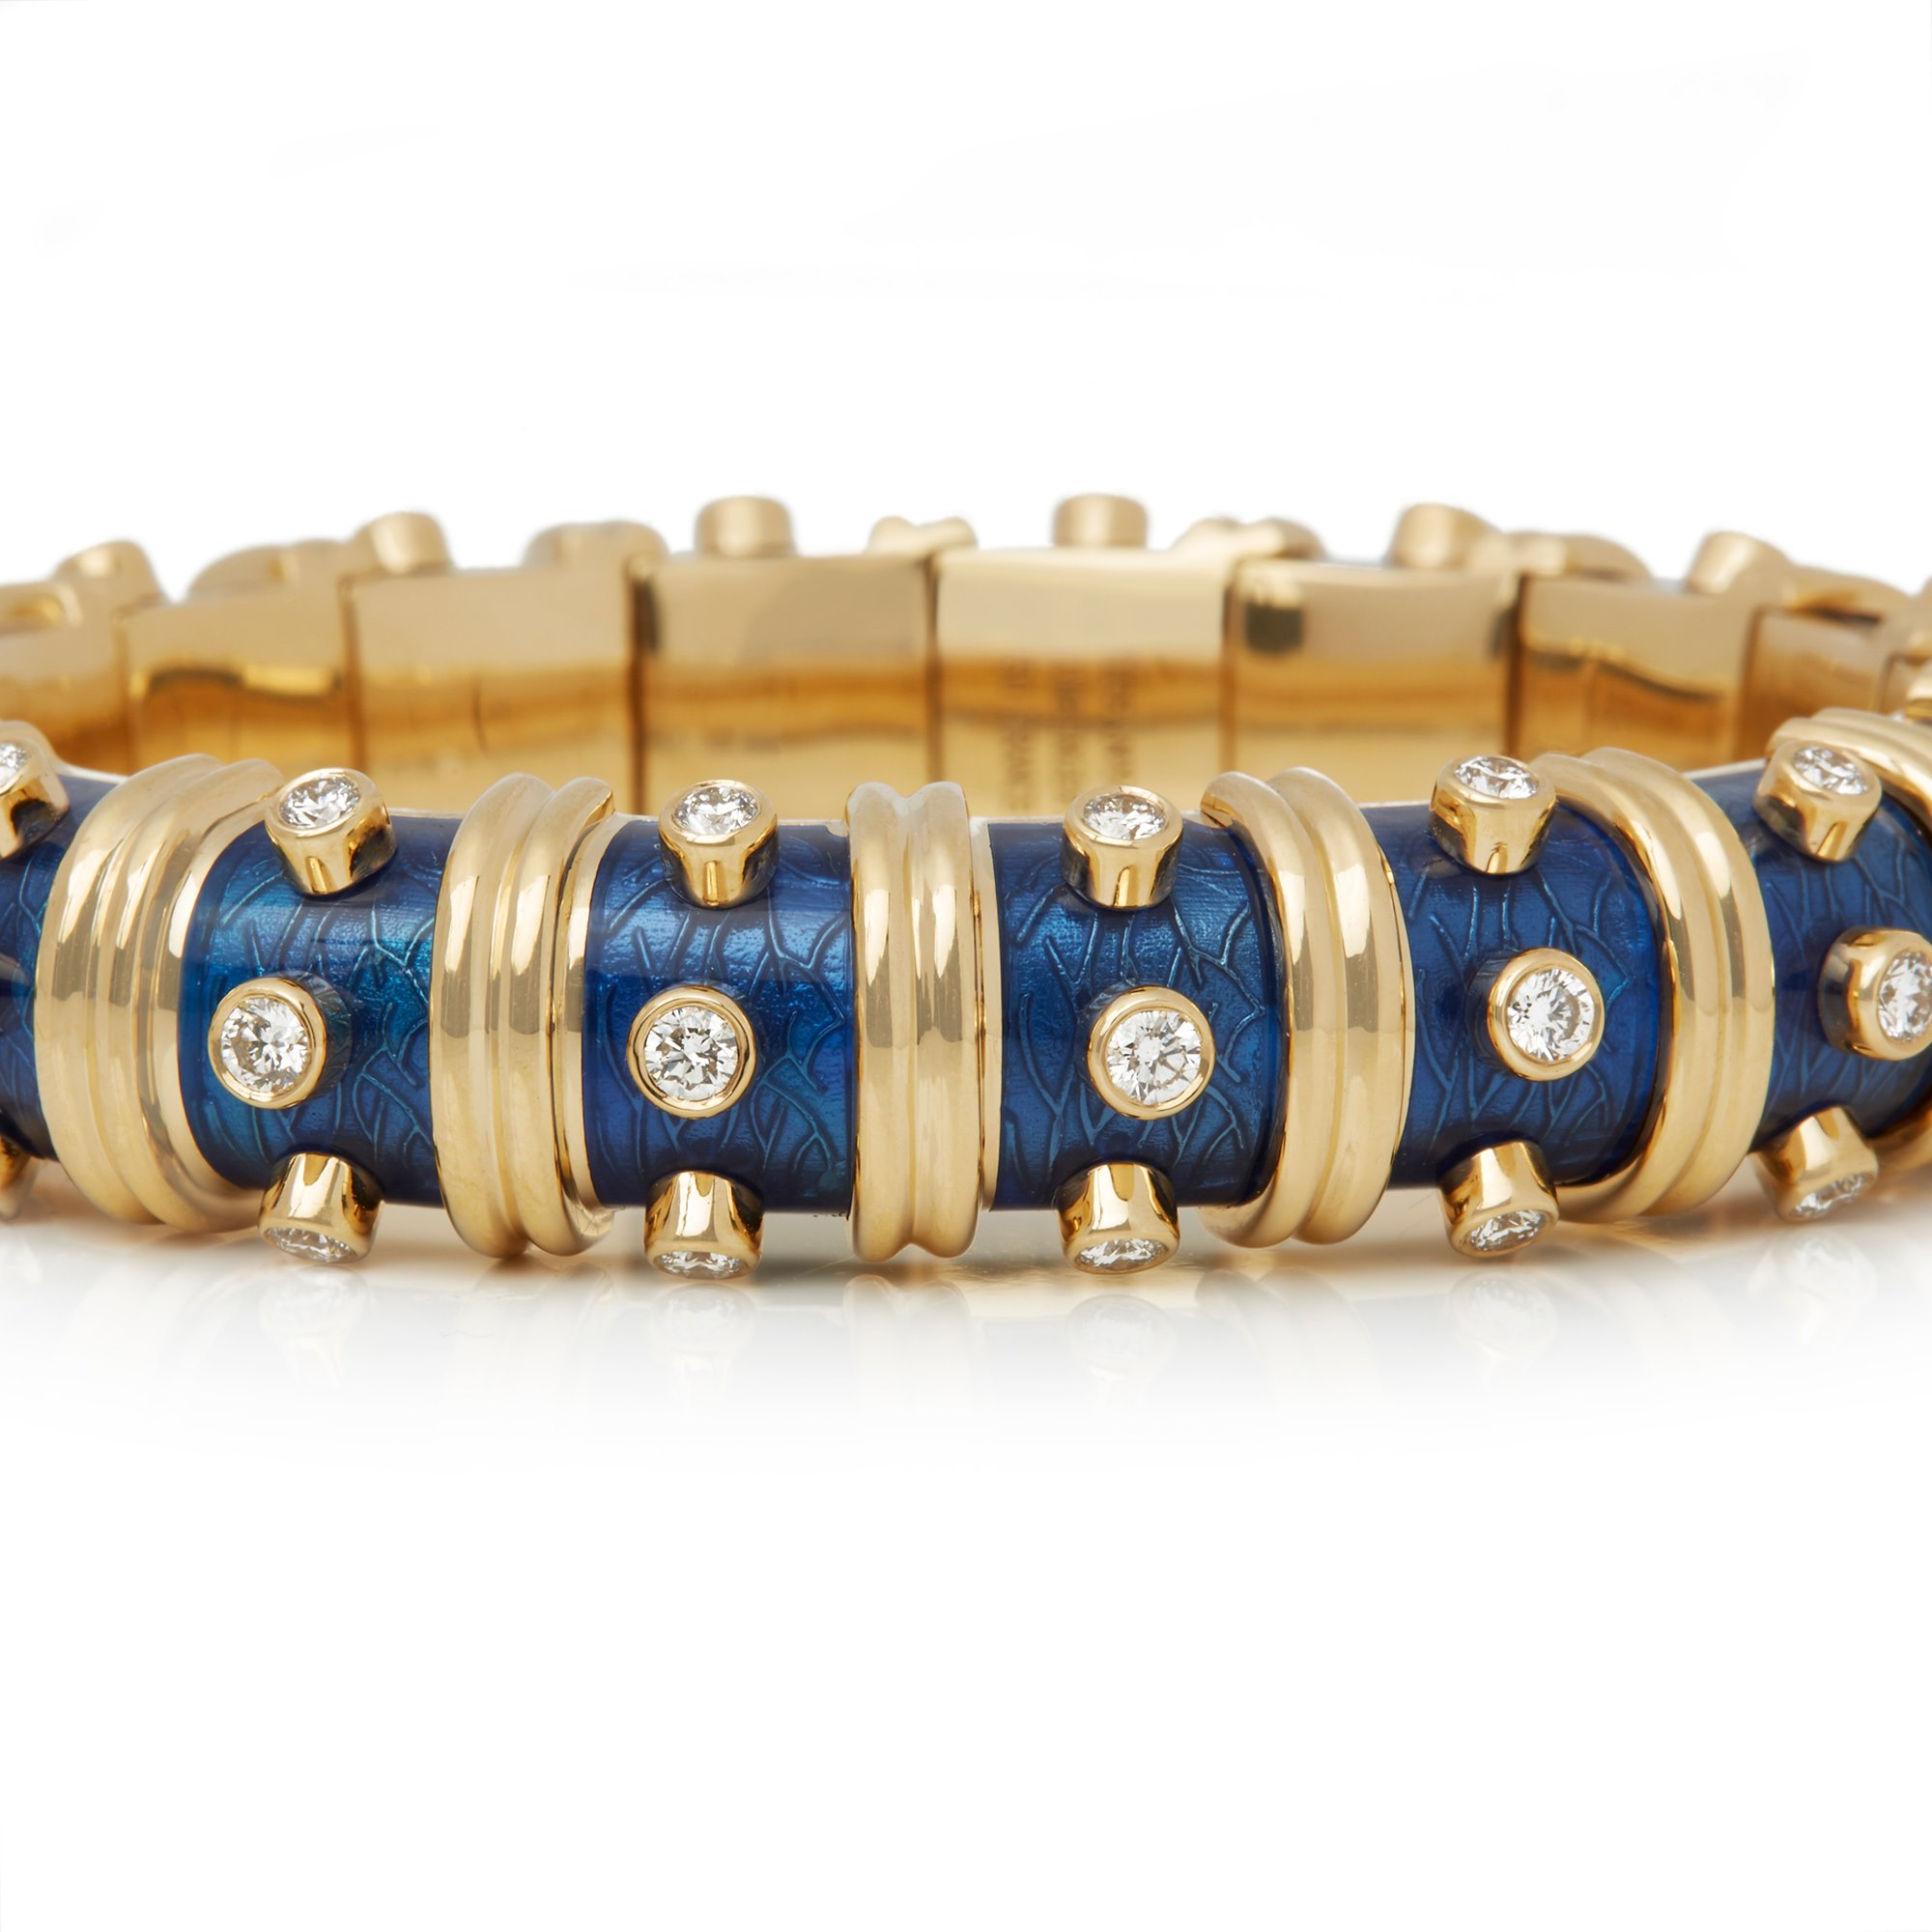 Tiffany & Co. 18k Yellow Gold Diamond & Blue Enamel Schlumberger Bracelet